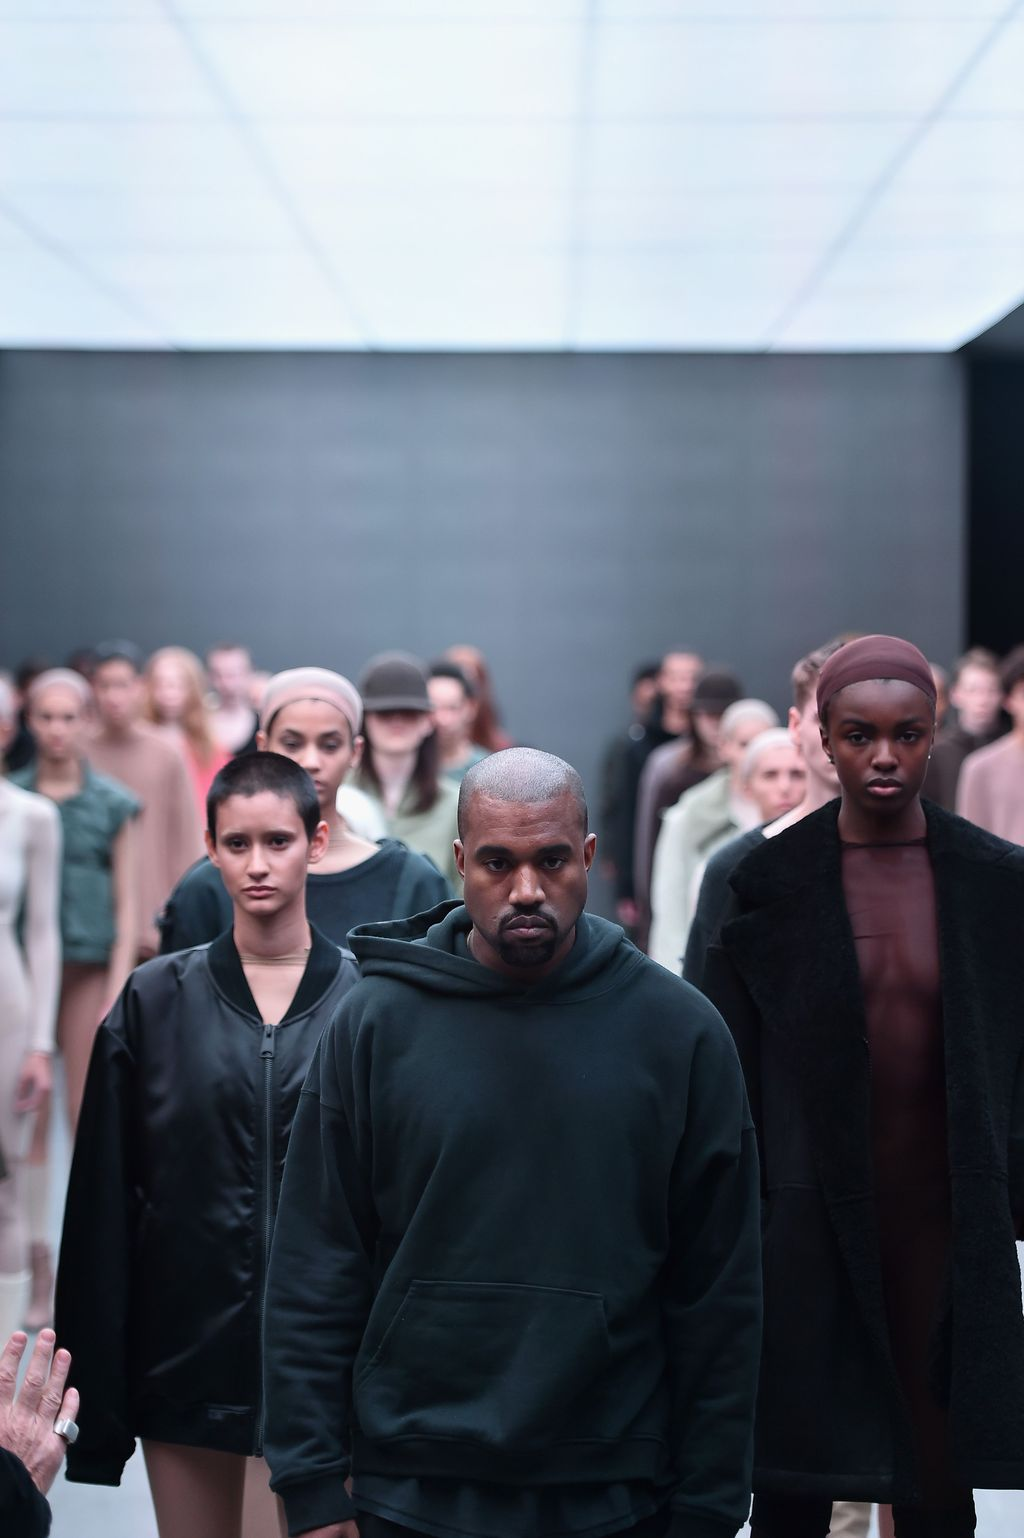 NEW YORK, NY - SEPTEMBER 07: (EDITORS NOTE: Image contains partial nudity.)  Models pose on the runway at the Kanye West Yeezy Season 4 fashion show on September 7, 2016 in New York City.  (Photo by Bryan Bedder/Getty Images for Yeezy Season 4)